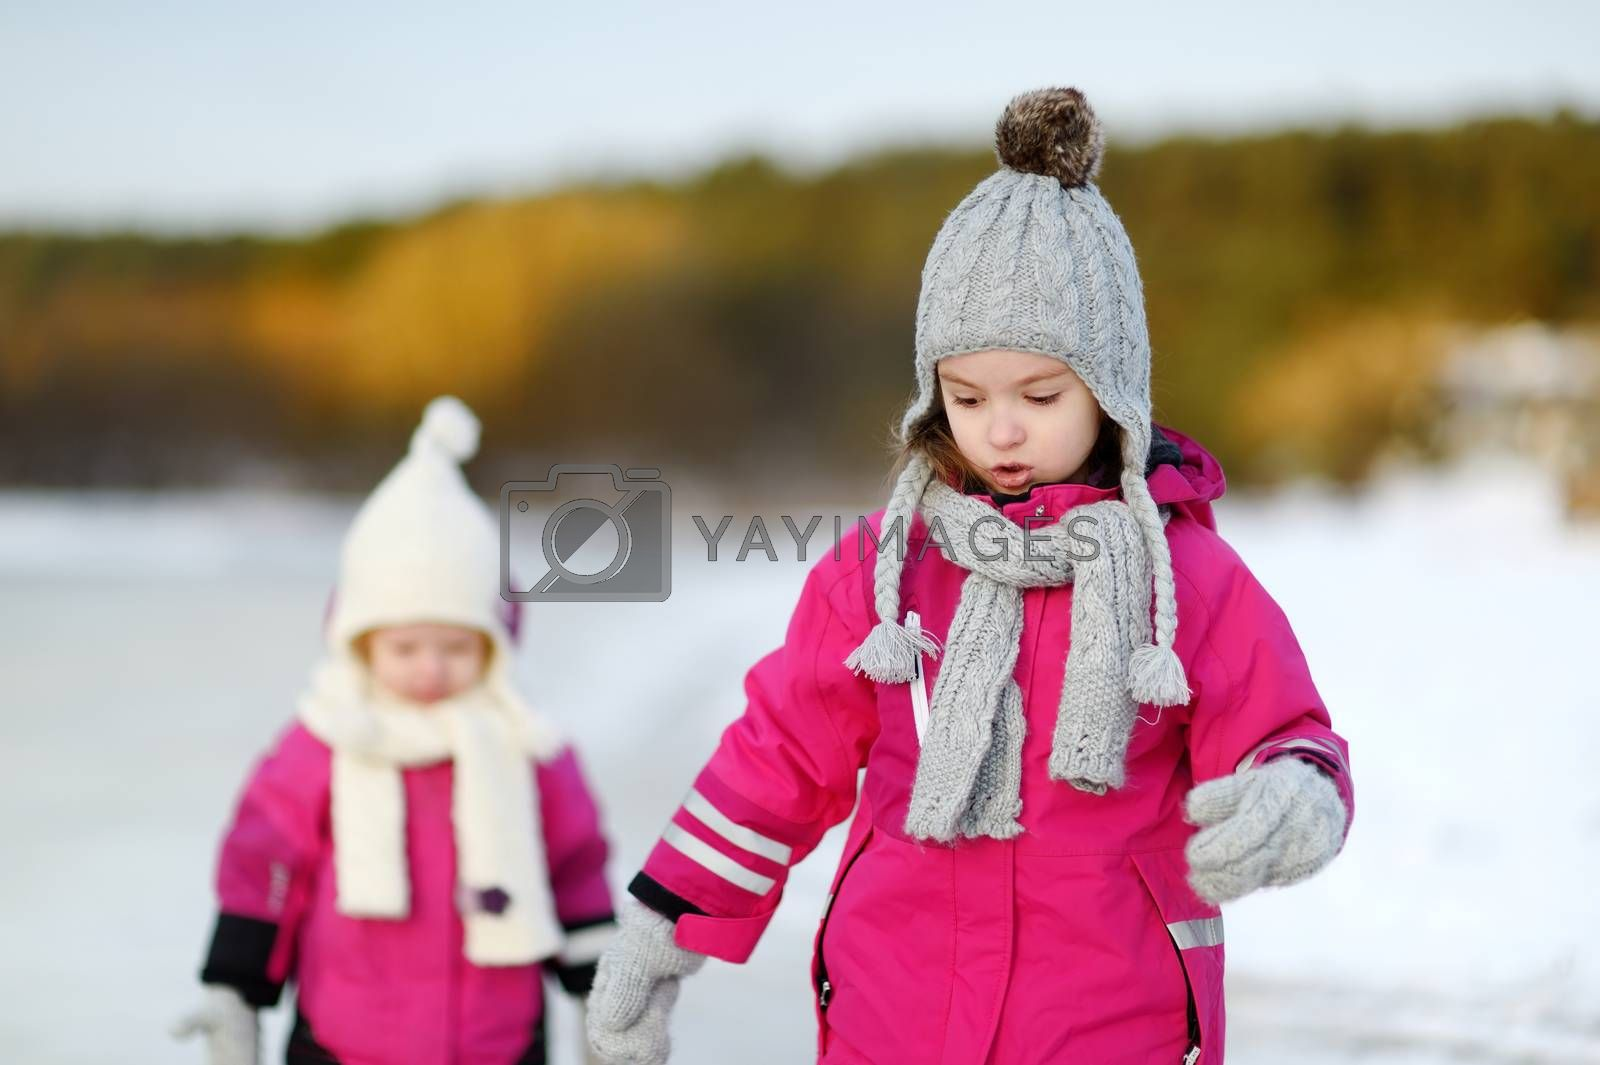 Royalty free image of Two little sisters having fun on snowy winter day by maximkabb